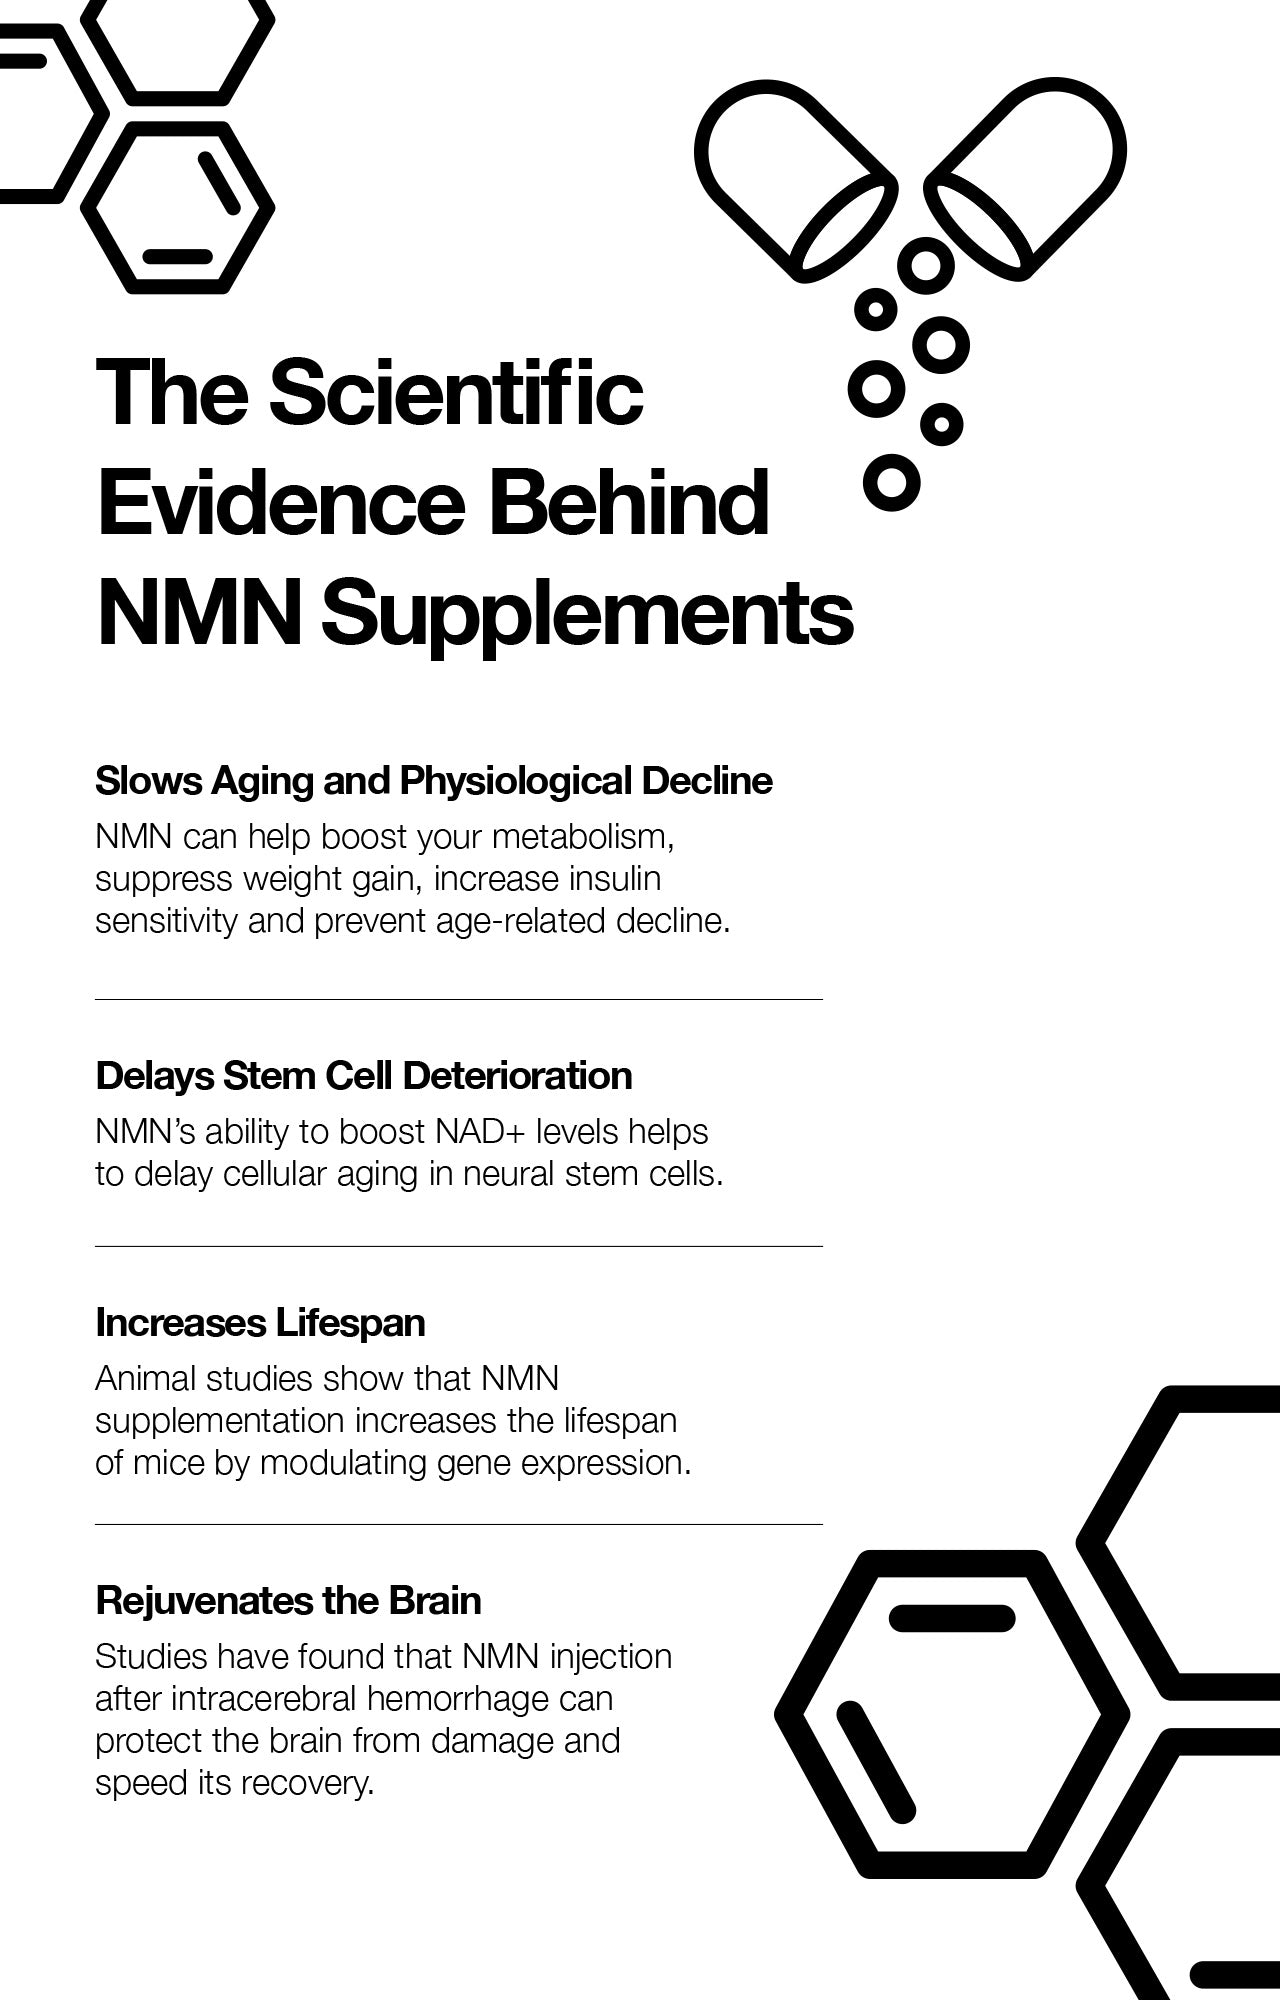 The Scientific Evidence Behind NMN Supplements